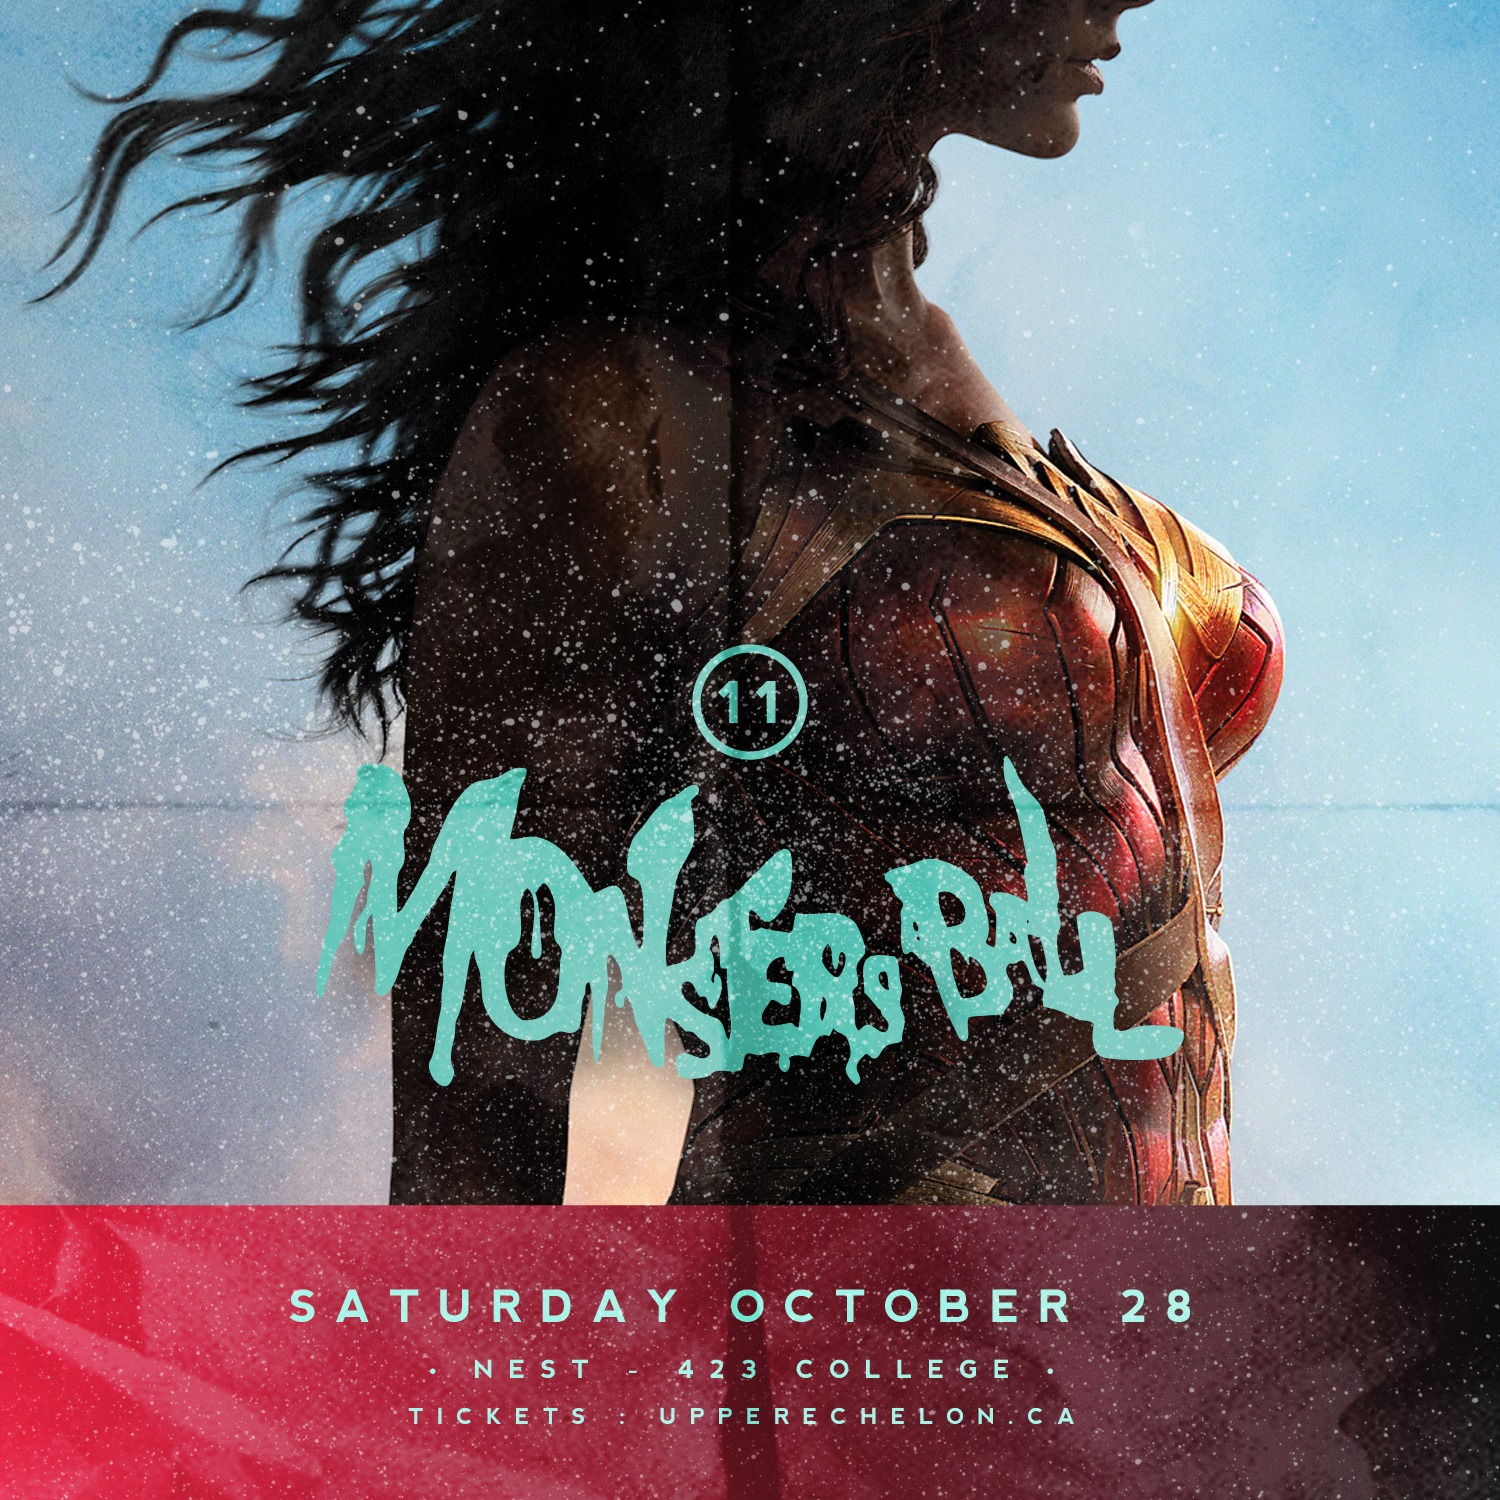 MONSTERS BALL 11 | Sold Out - Limited Door Tix